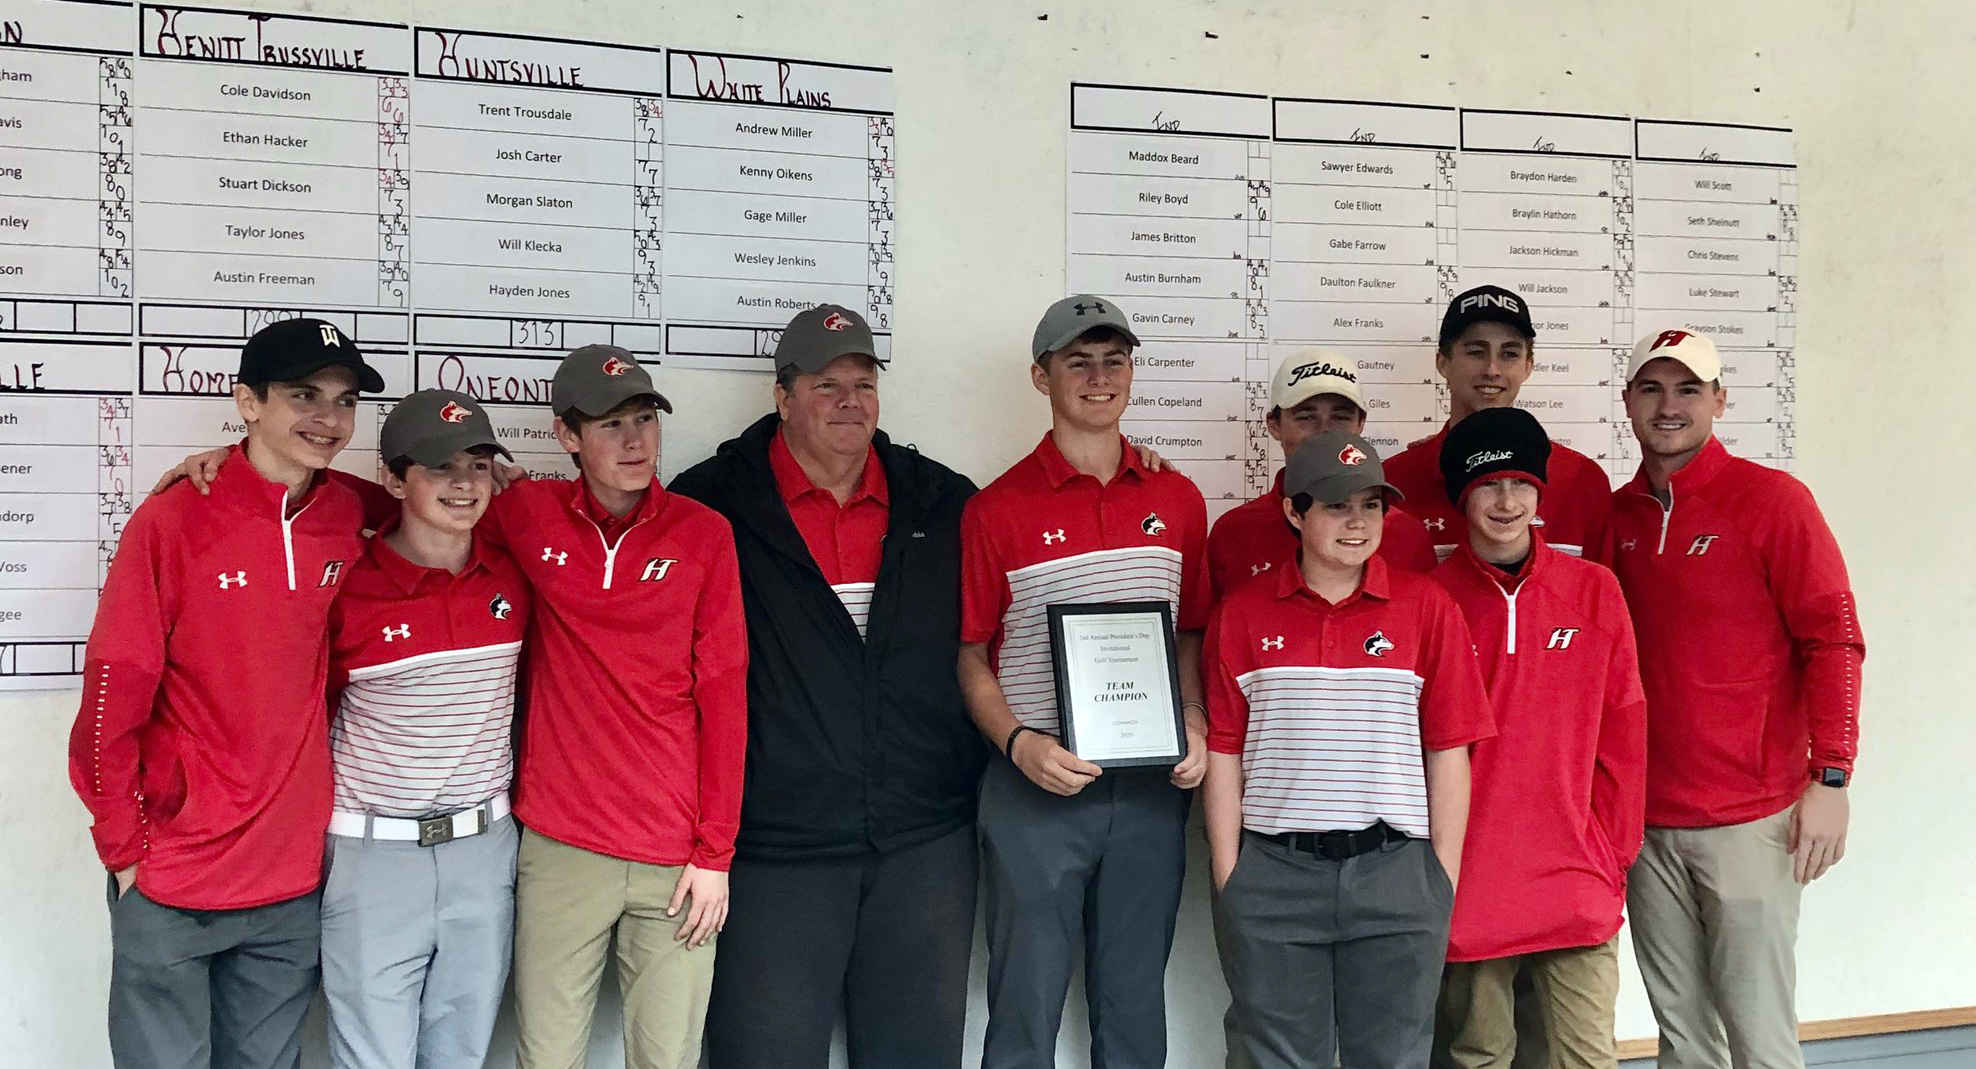 Hewitt-Trussville boys' golf team wins President's Day Invitational Golf Tournament in first event for new head coach Steve Patrick